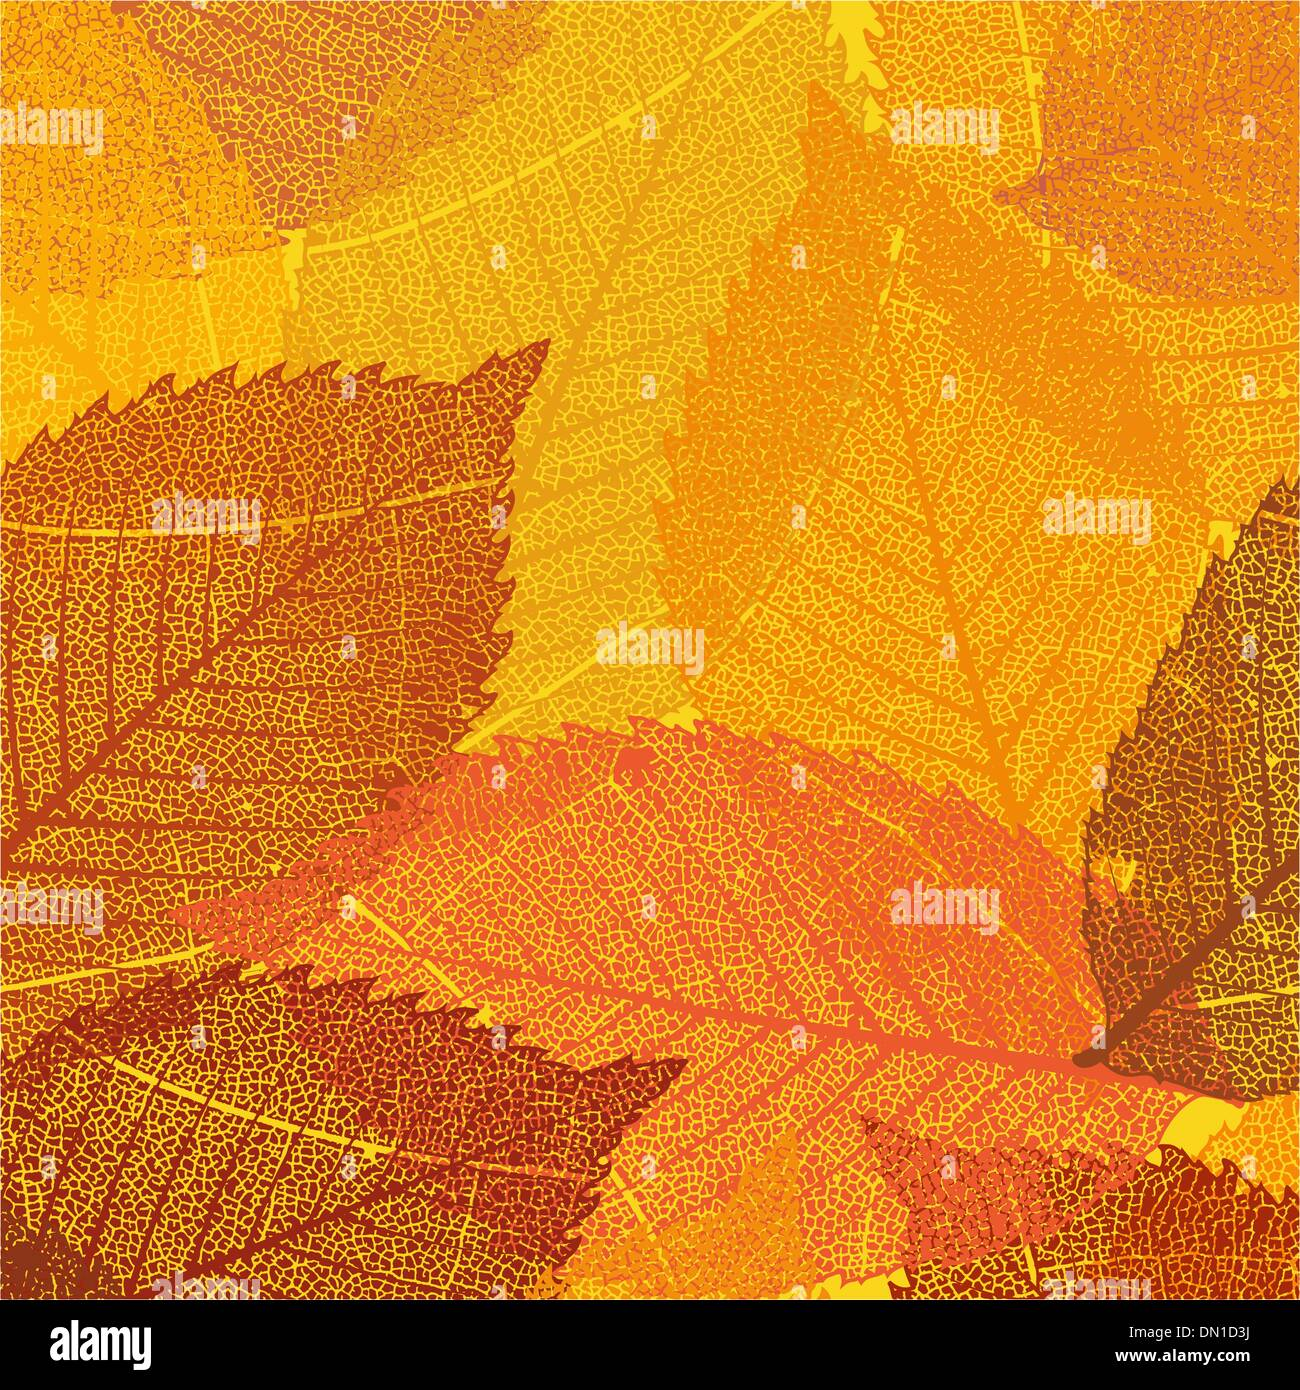 dry autumn leaves template eps 8 stock vector art illustration